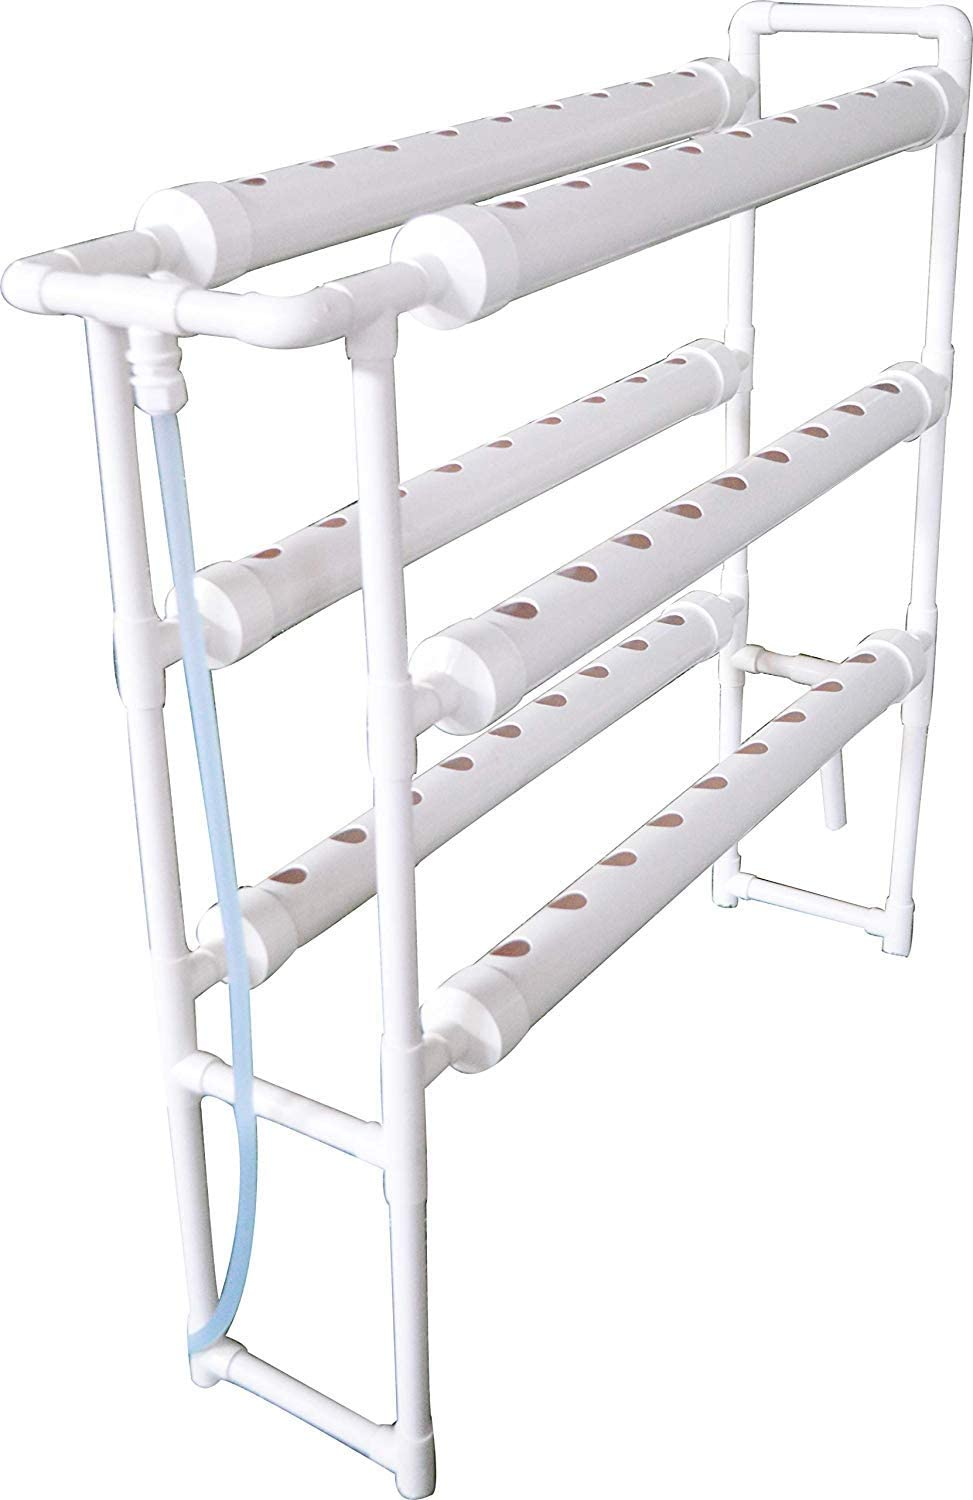 "INTBUYING Hydroponic 54 Holes Plant Site Grow Kit Garden System Vegetable Vertical Style Double Side -6 Pipes 3 Layer (Diameter of The Growing Pipe: 2.5"")"